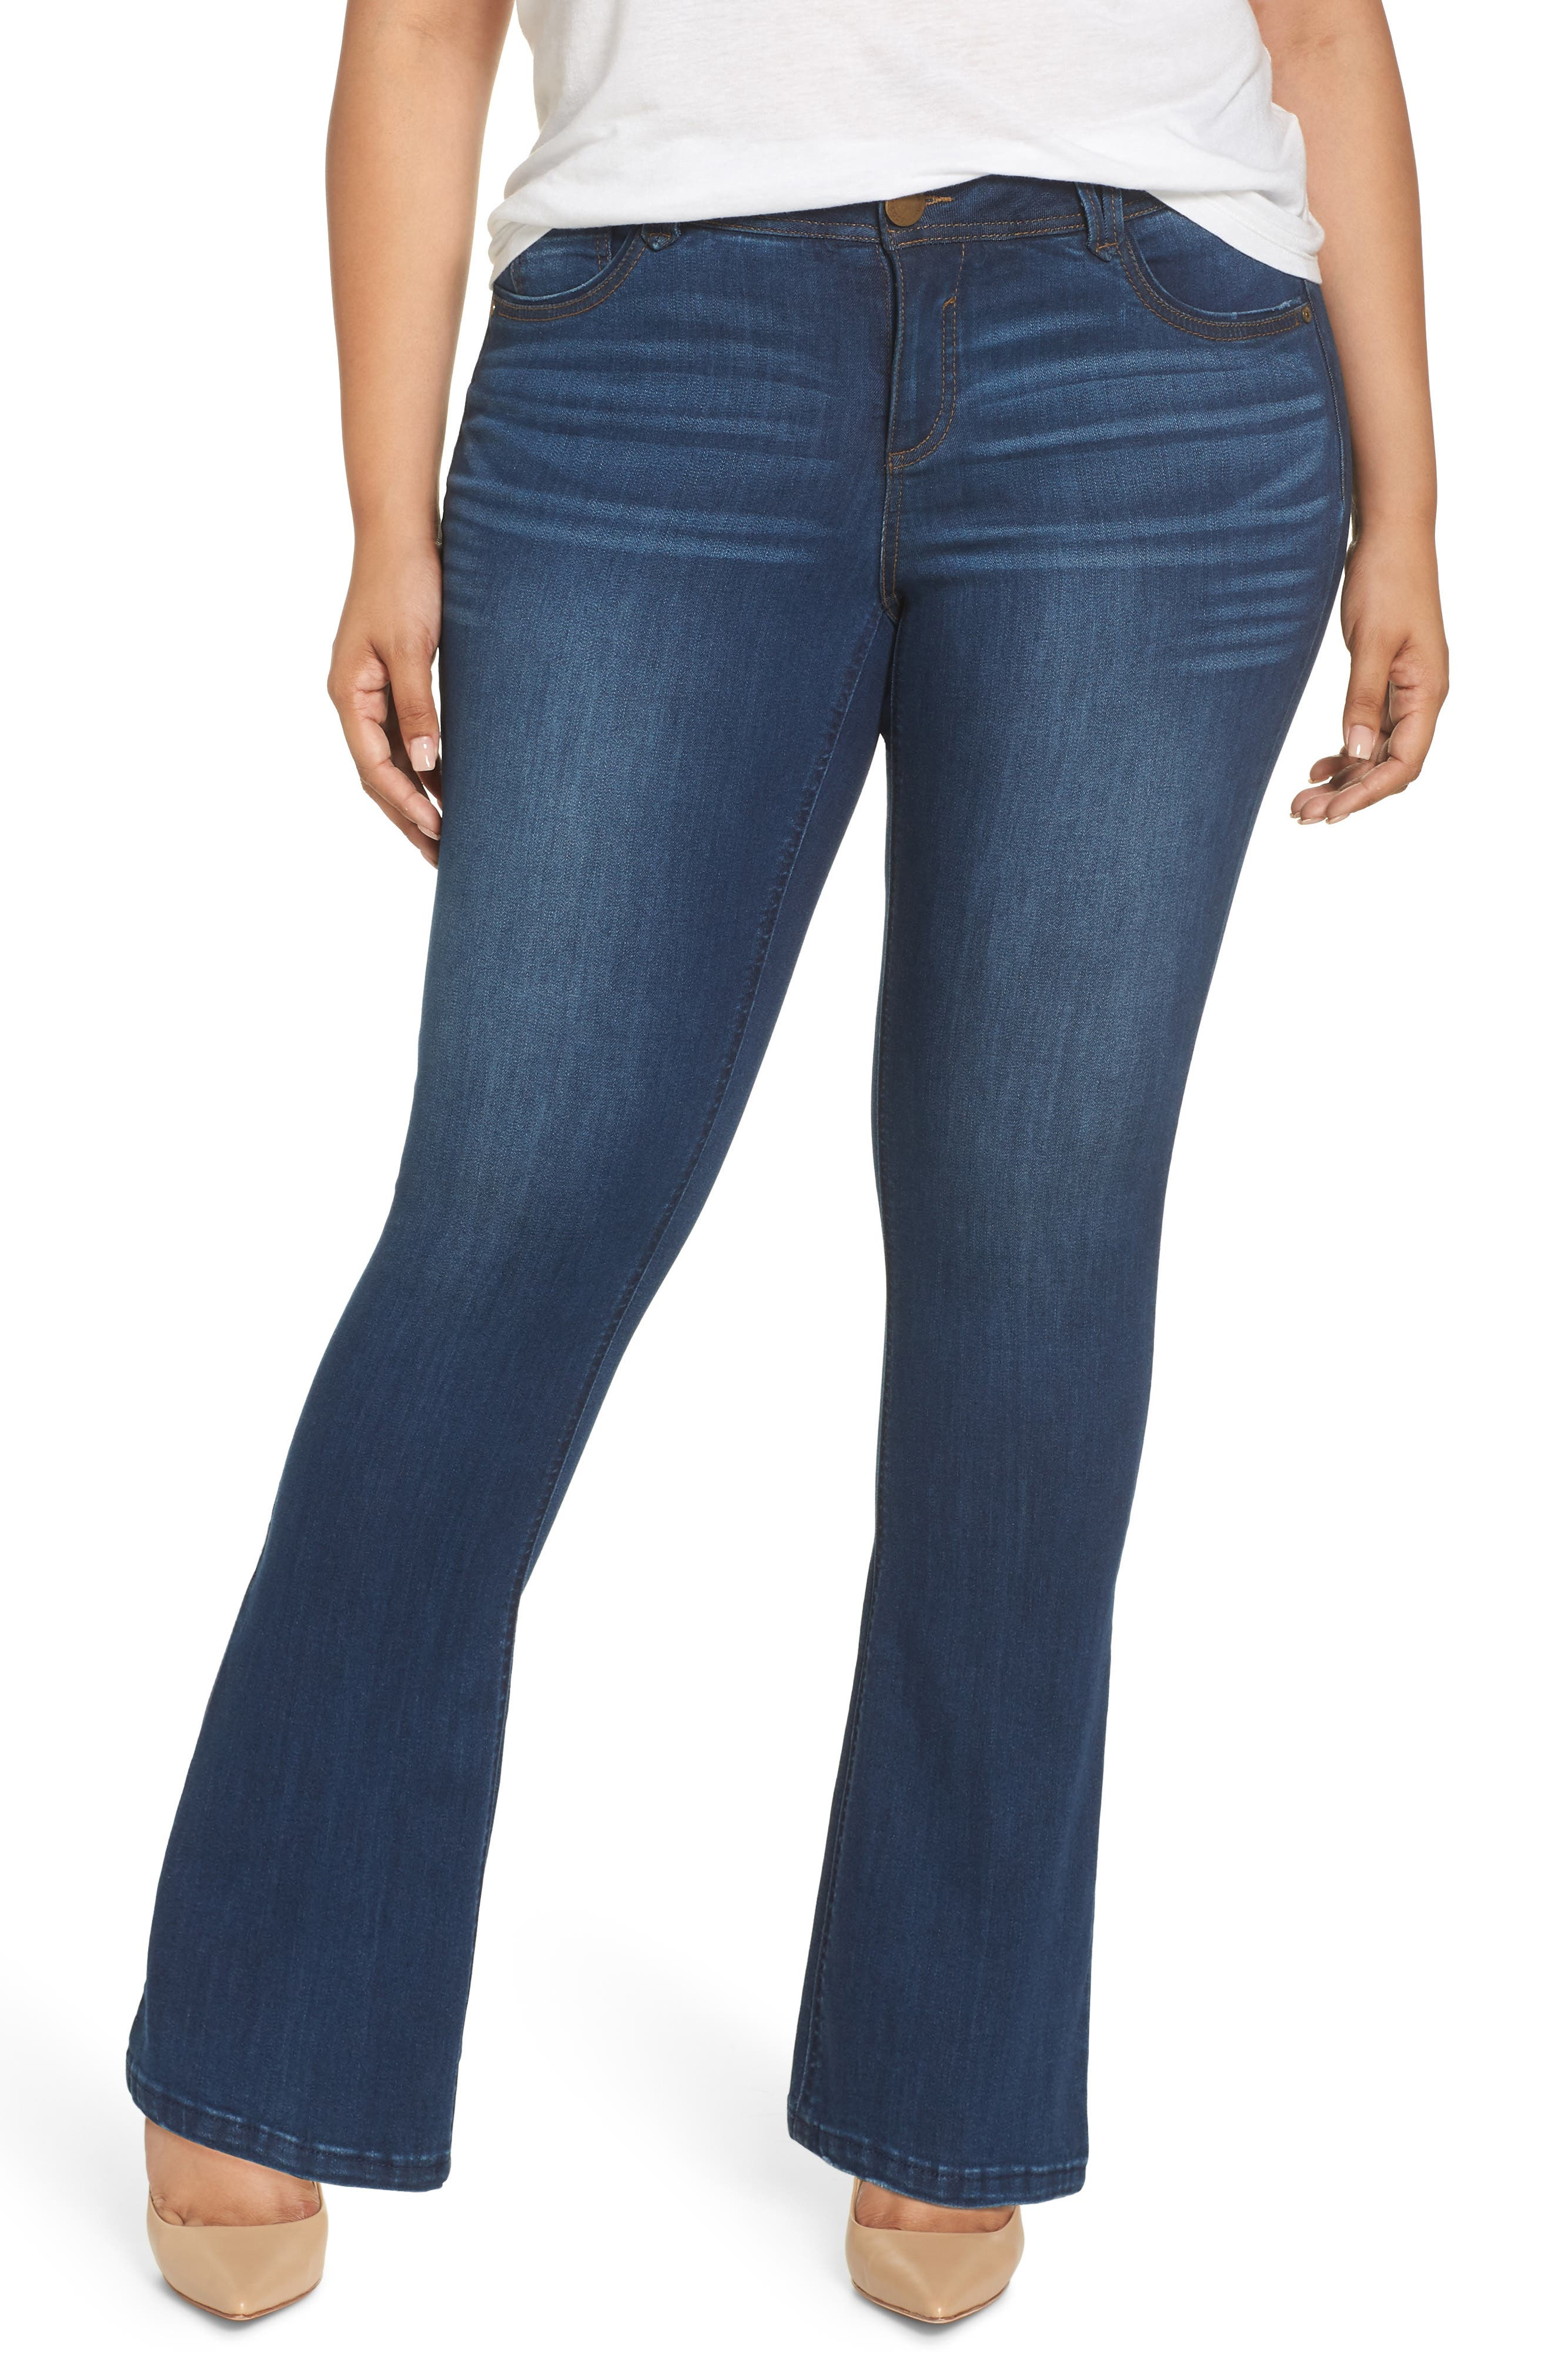 WIT & WISDOM, Ab-Solution Itty Bitty Bootcut Jeans, Main thumbnail 1, color, BLUE